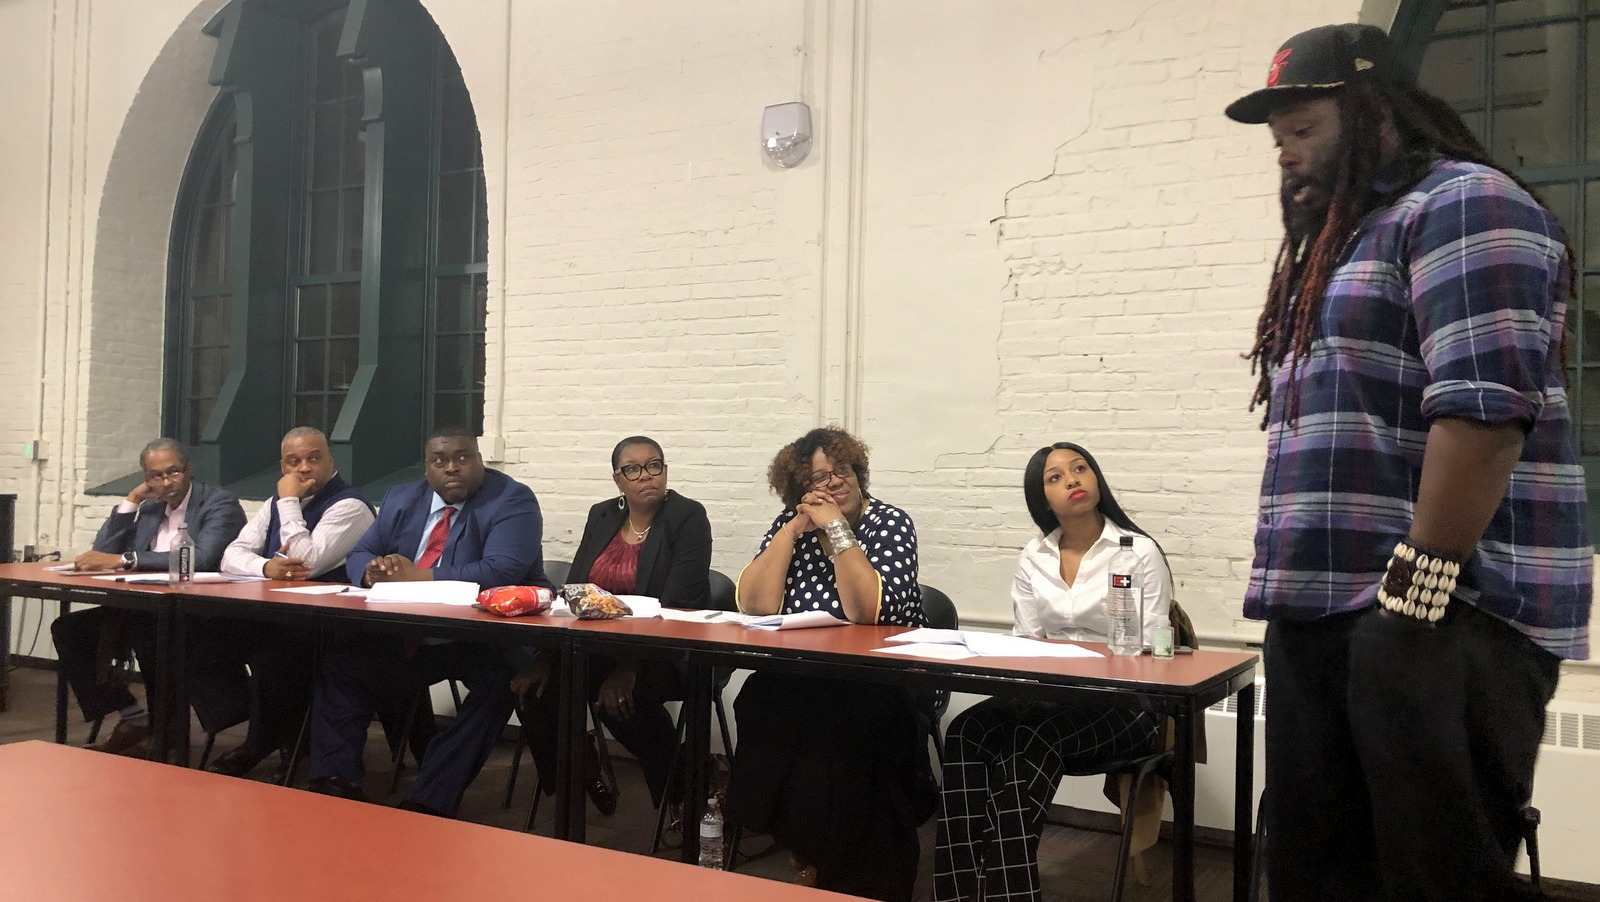 Candidates, including David Fakunle (right), faced six central committee members. Committee chair Branch, herself a candidate, did not sit with the others. (Fern Shen)